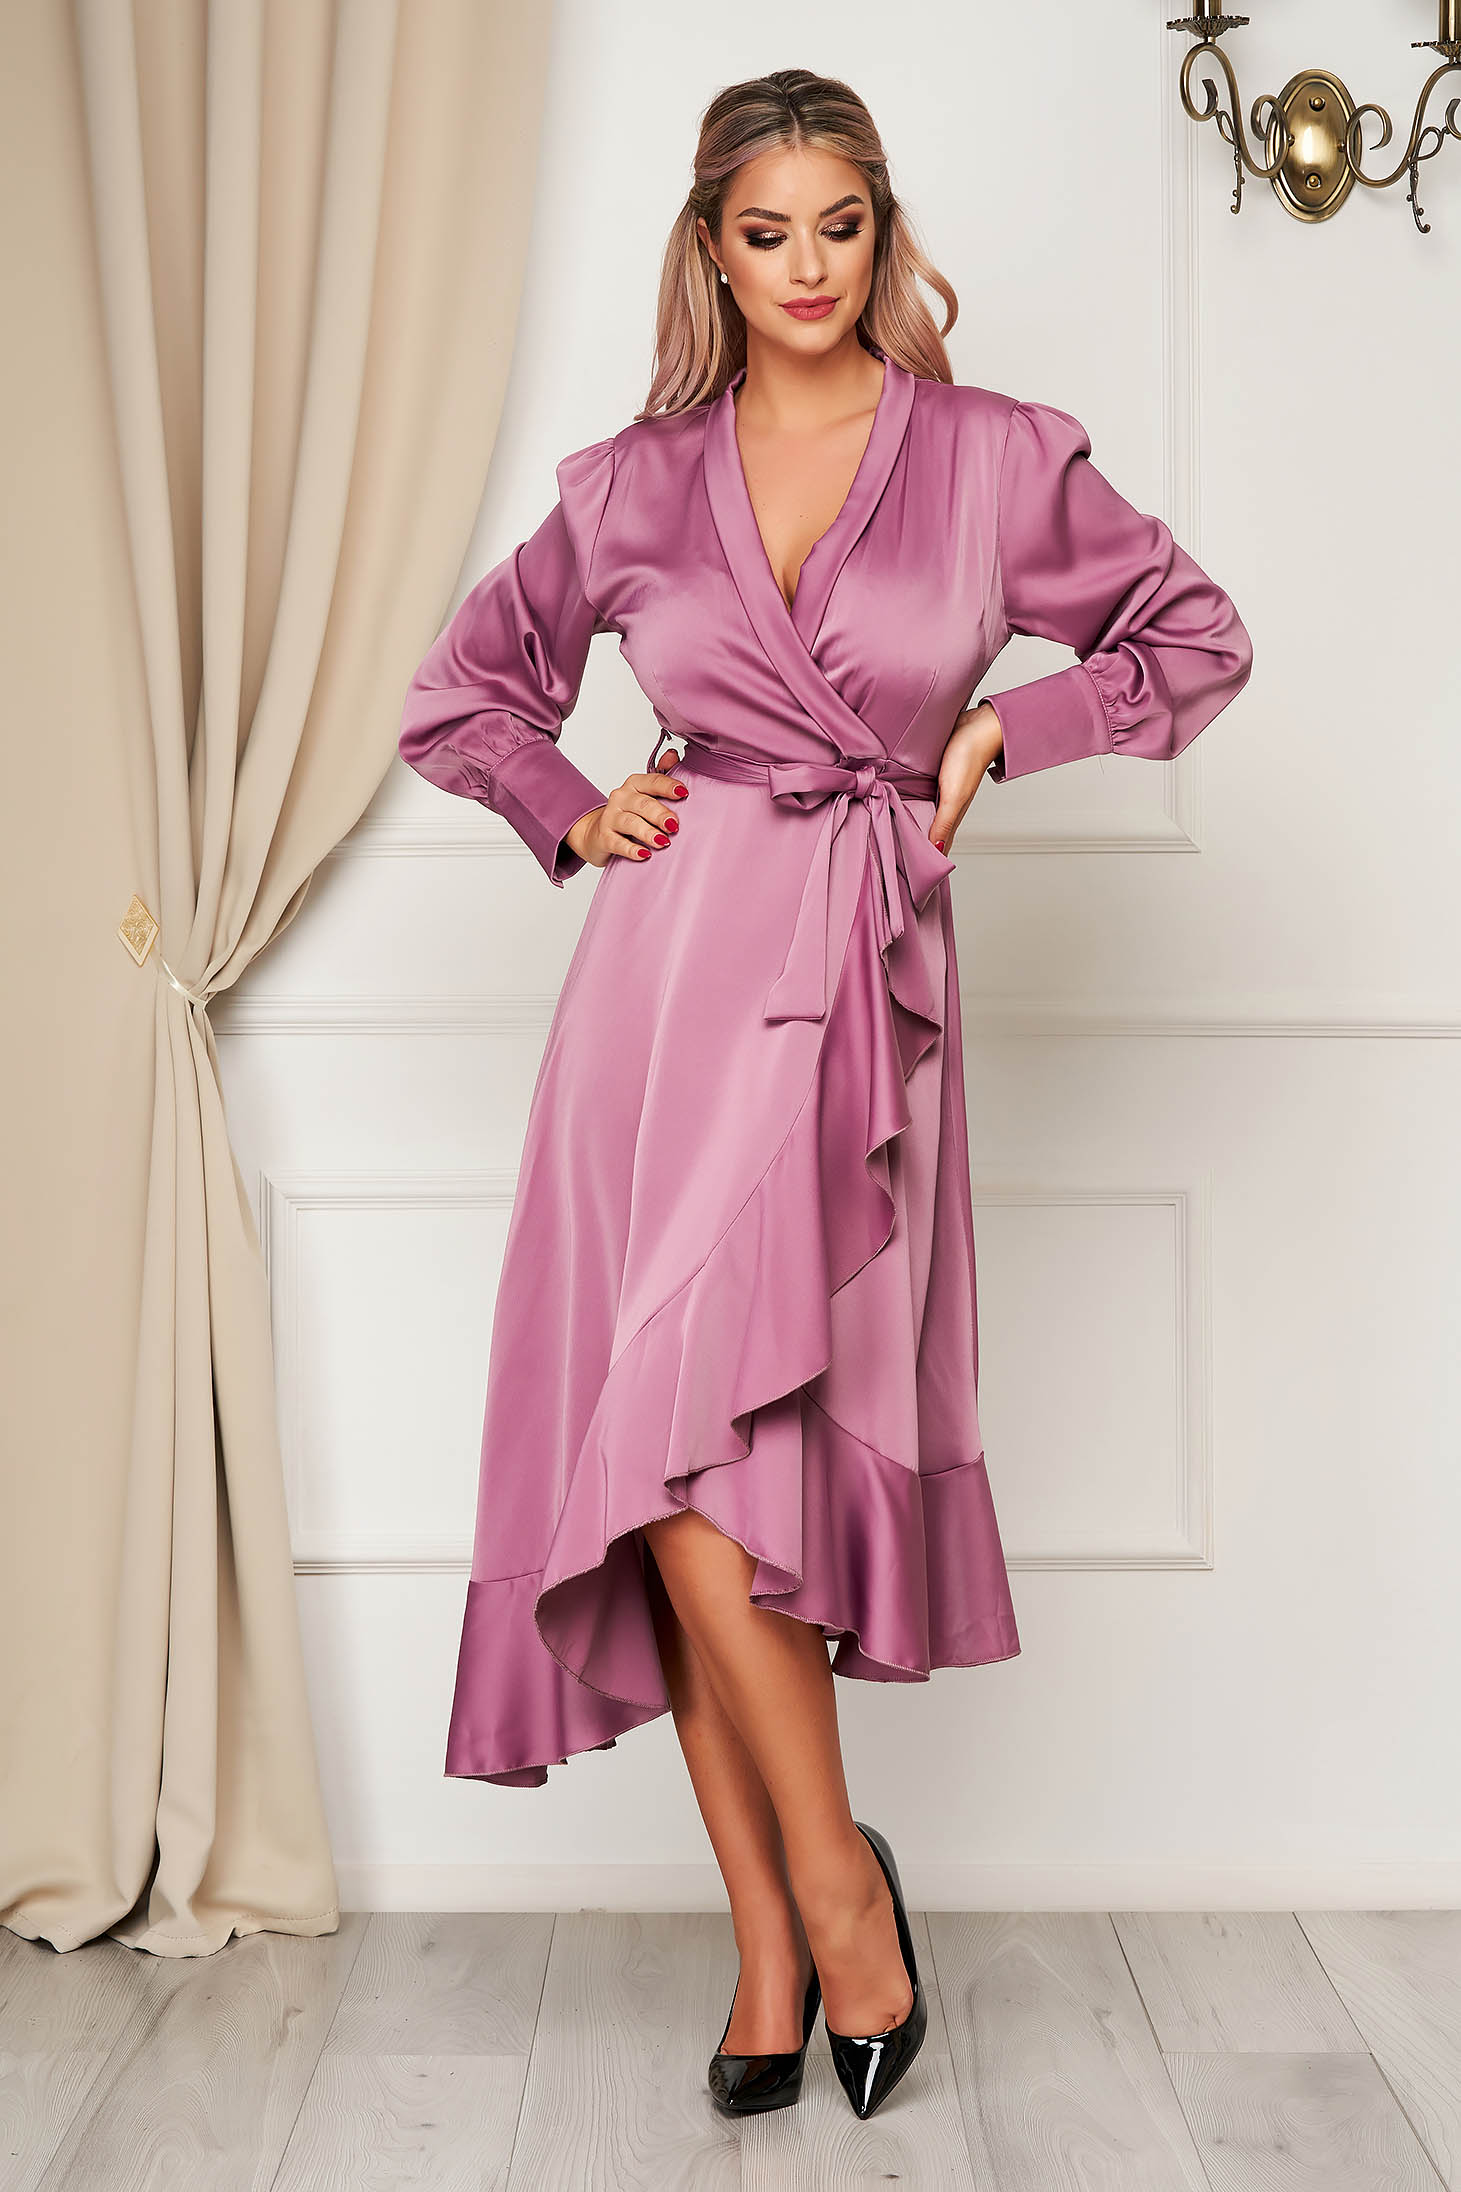 Lila dress elegant cloche wrap over front from satin fabric texture with ruffles at the buttom of the dress accessorized with tied waistband